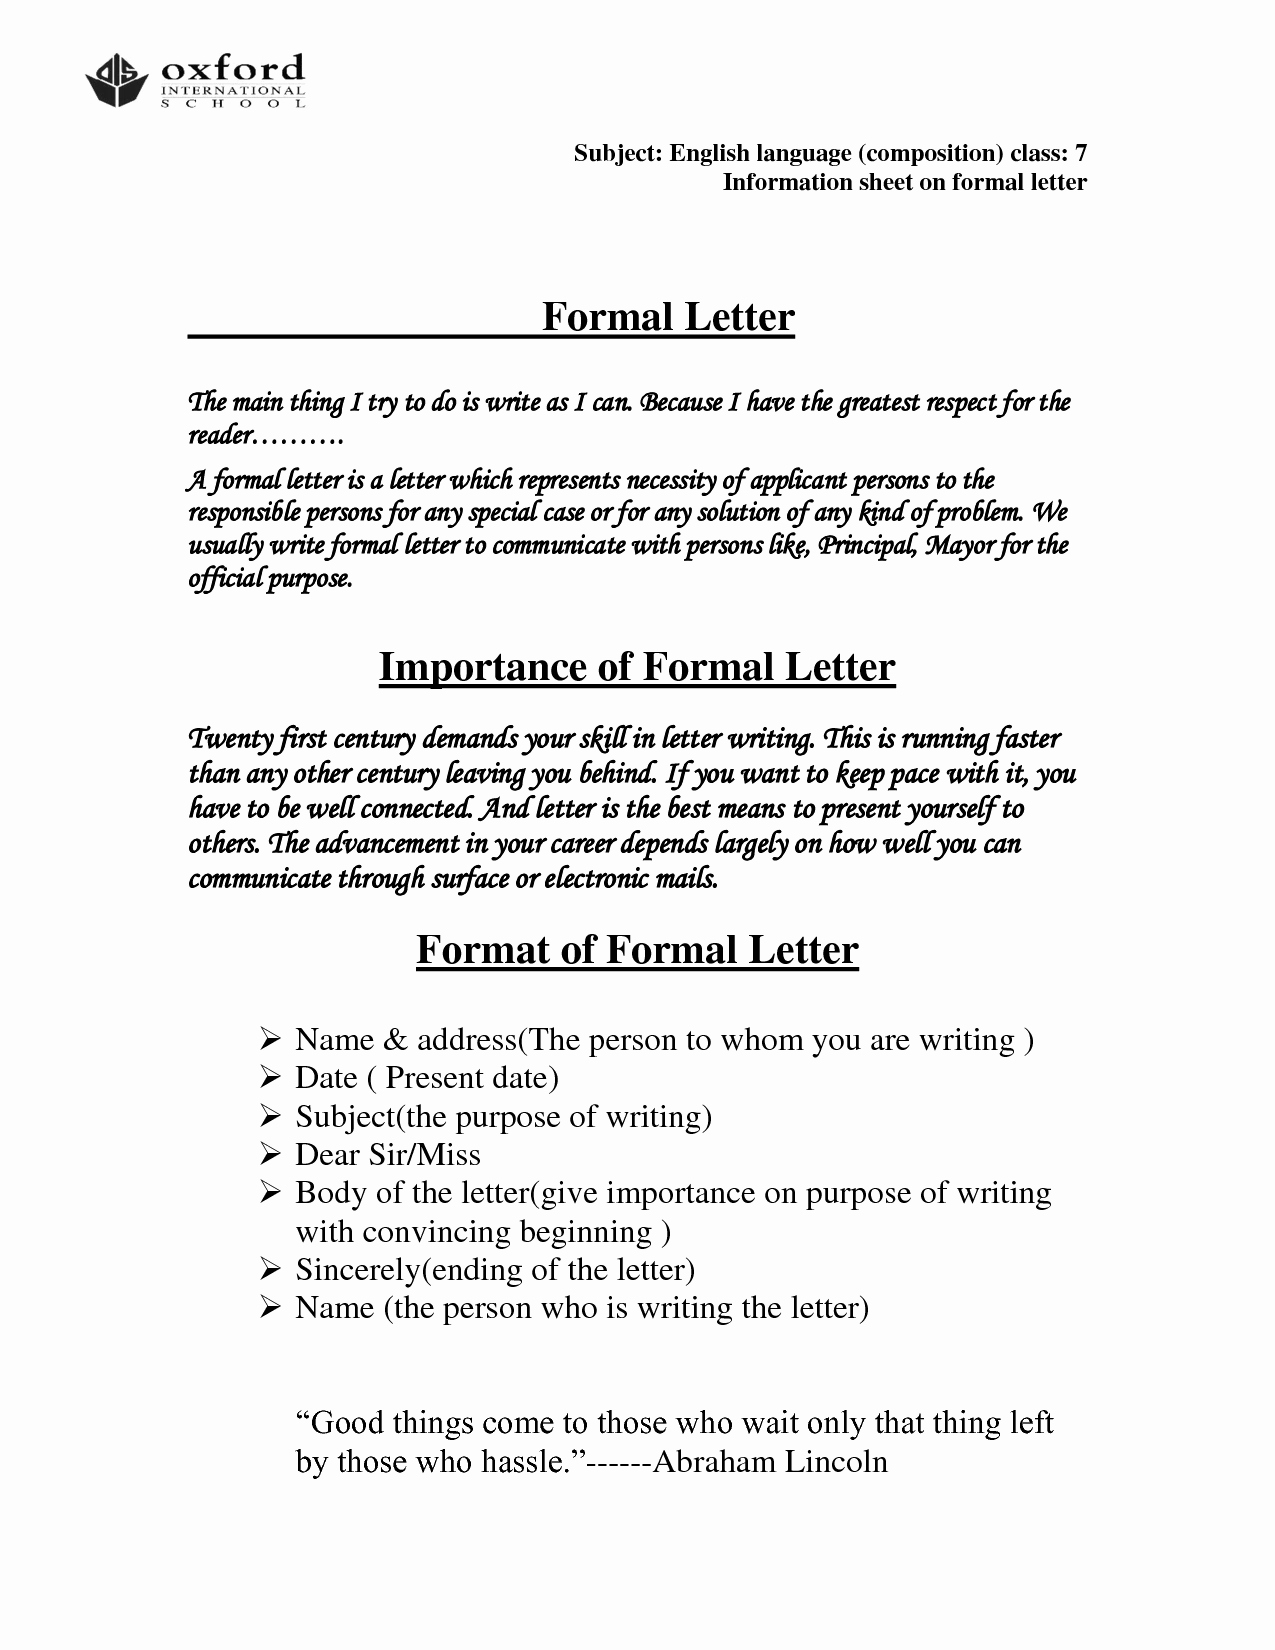 Formal Letter format Sample Beautiful Ficial Letter format Template Ficial Letter Business